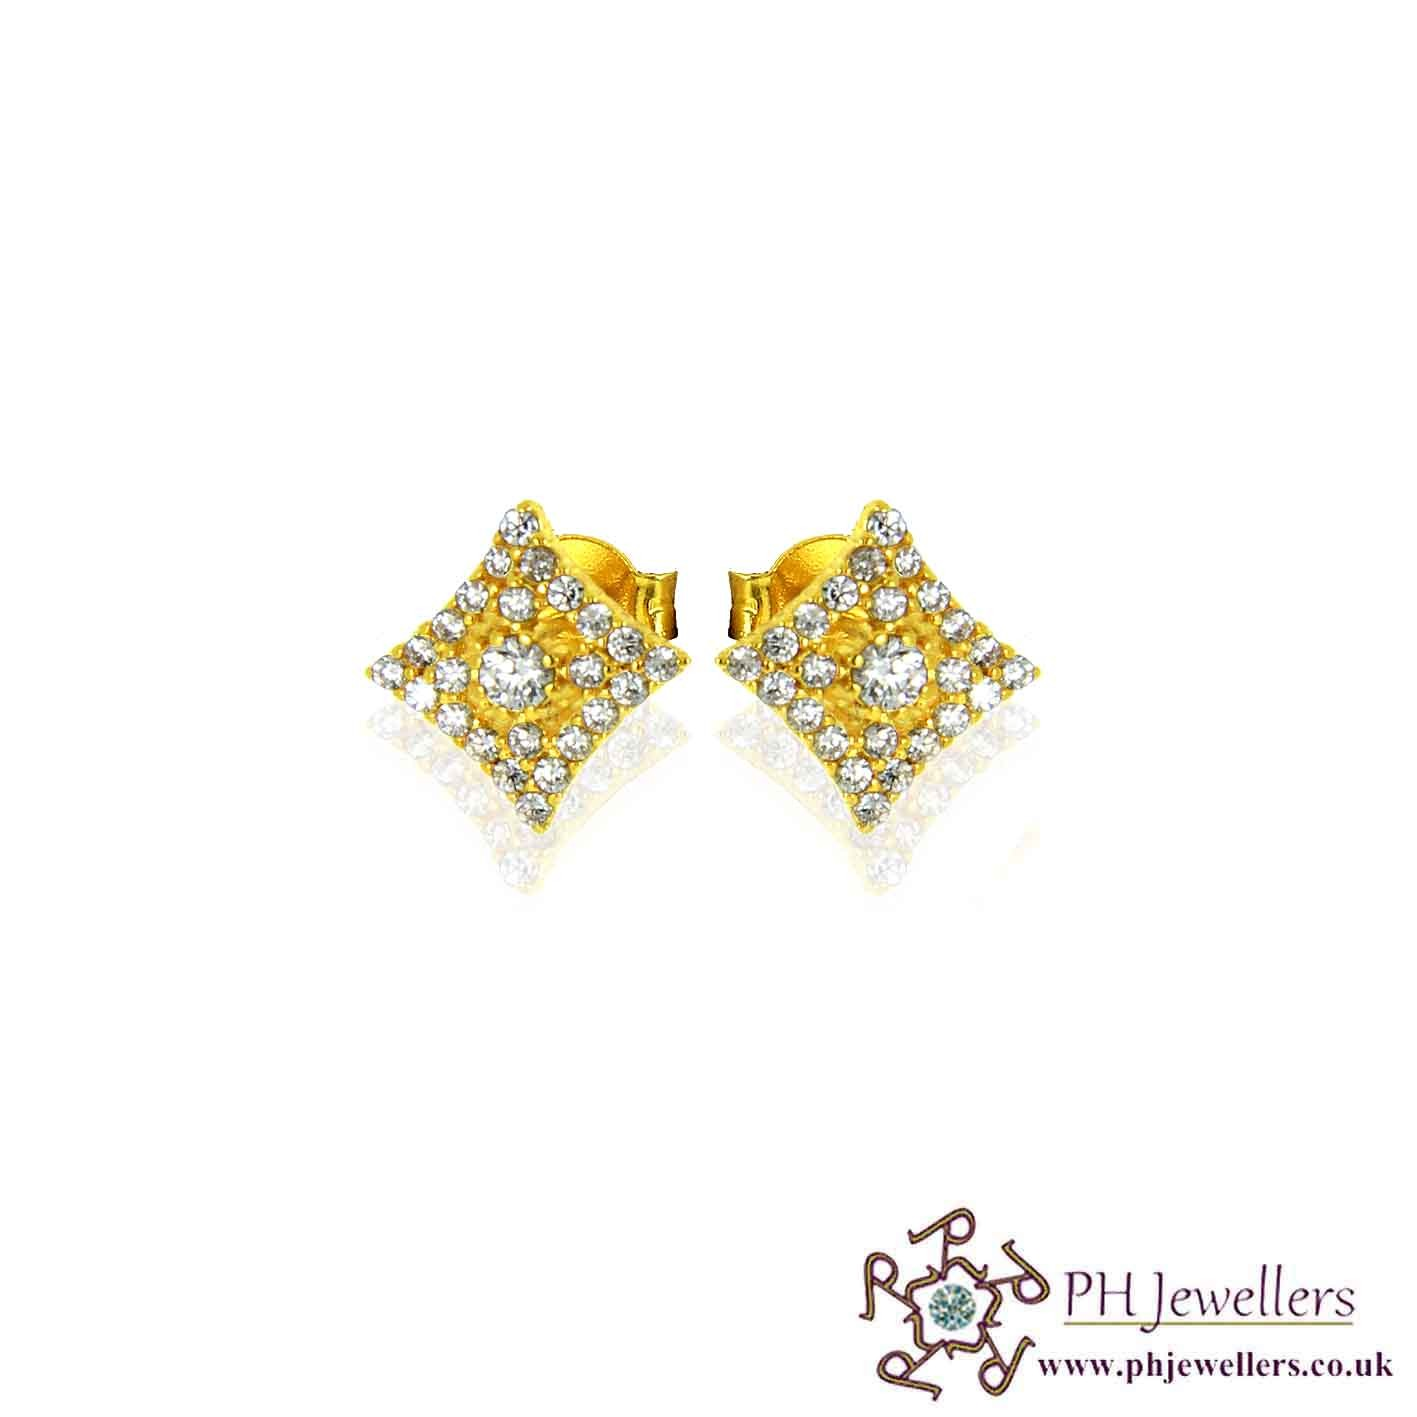 22ct 916 Yellow Gold Square Earring CZ SE43